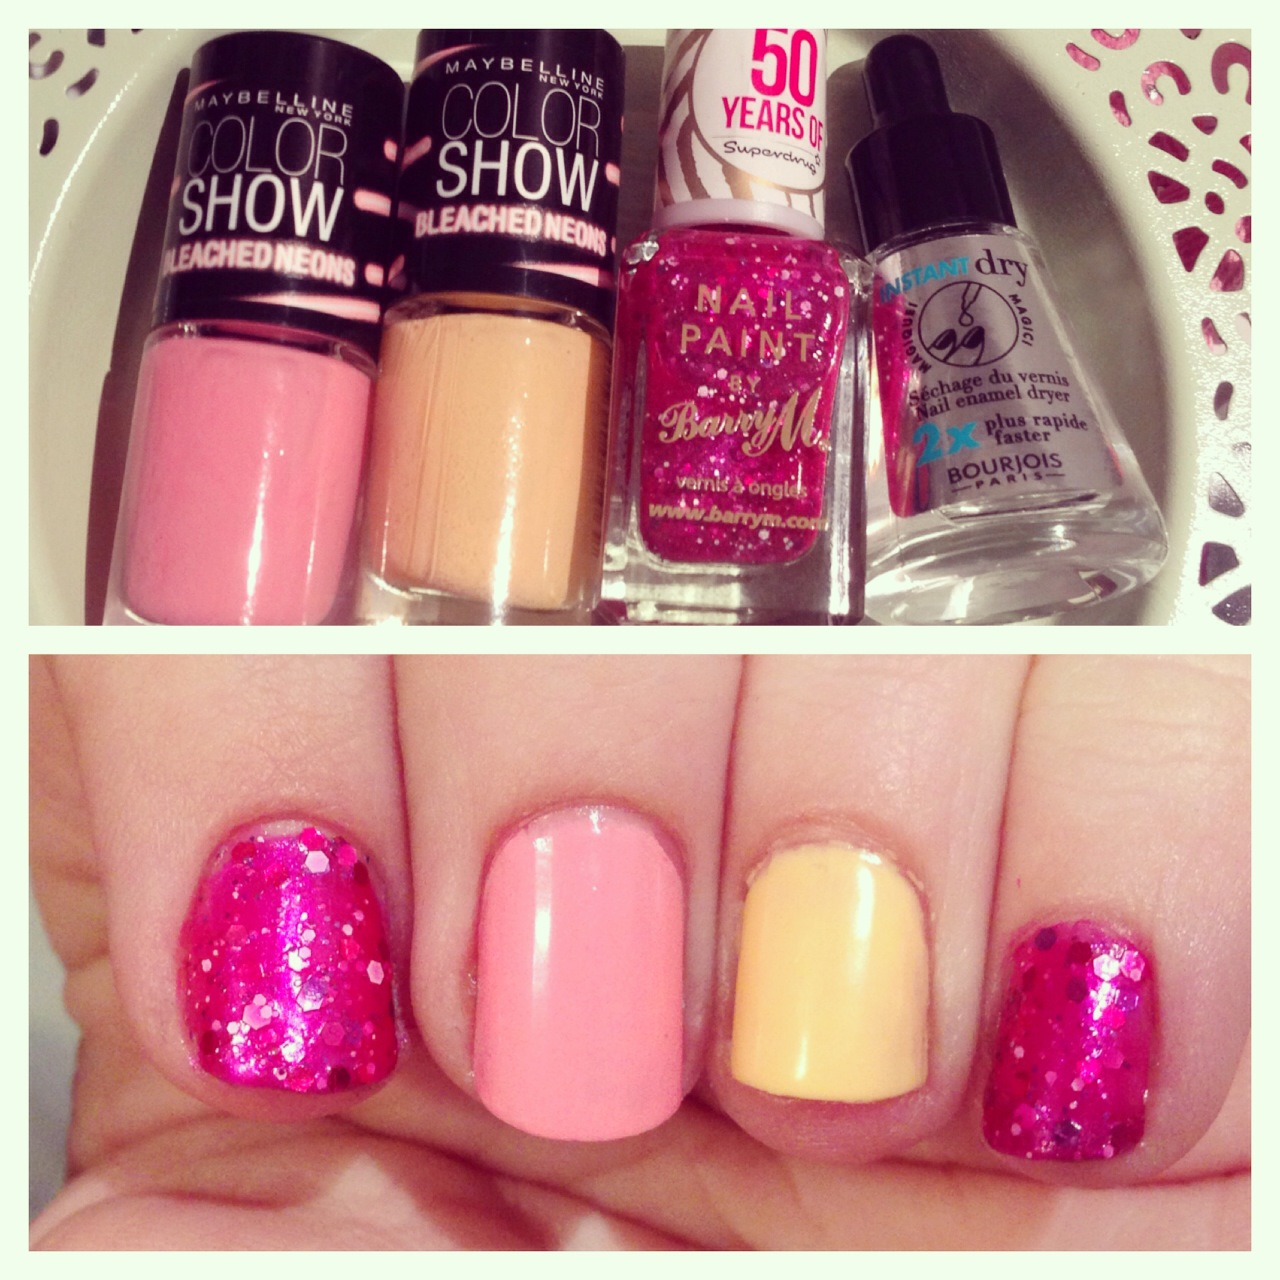 notanotheroneamy: Recent nail looks using my new purchases featuring ...